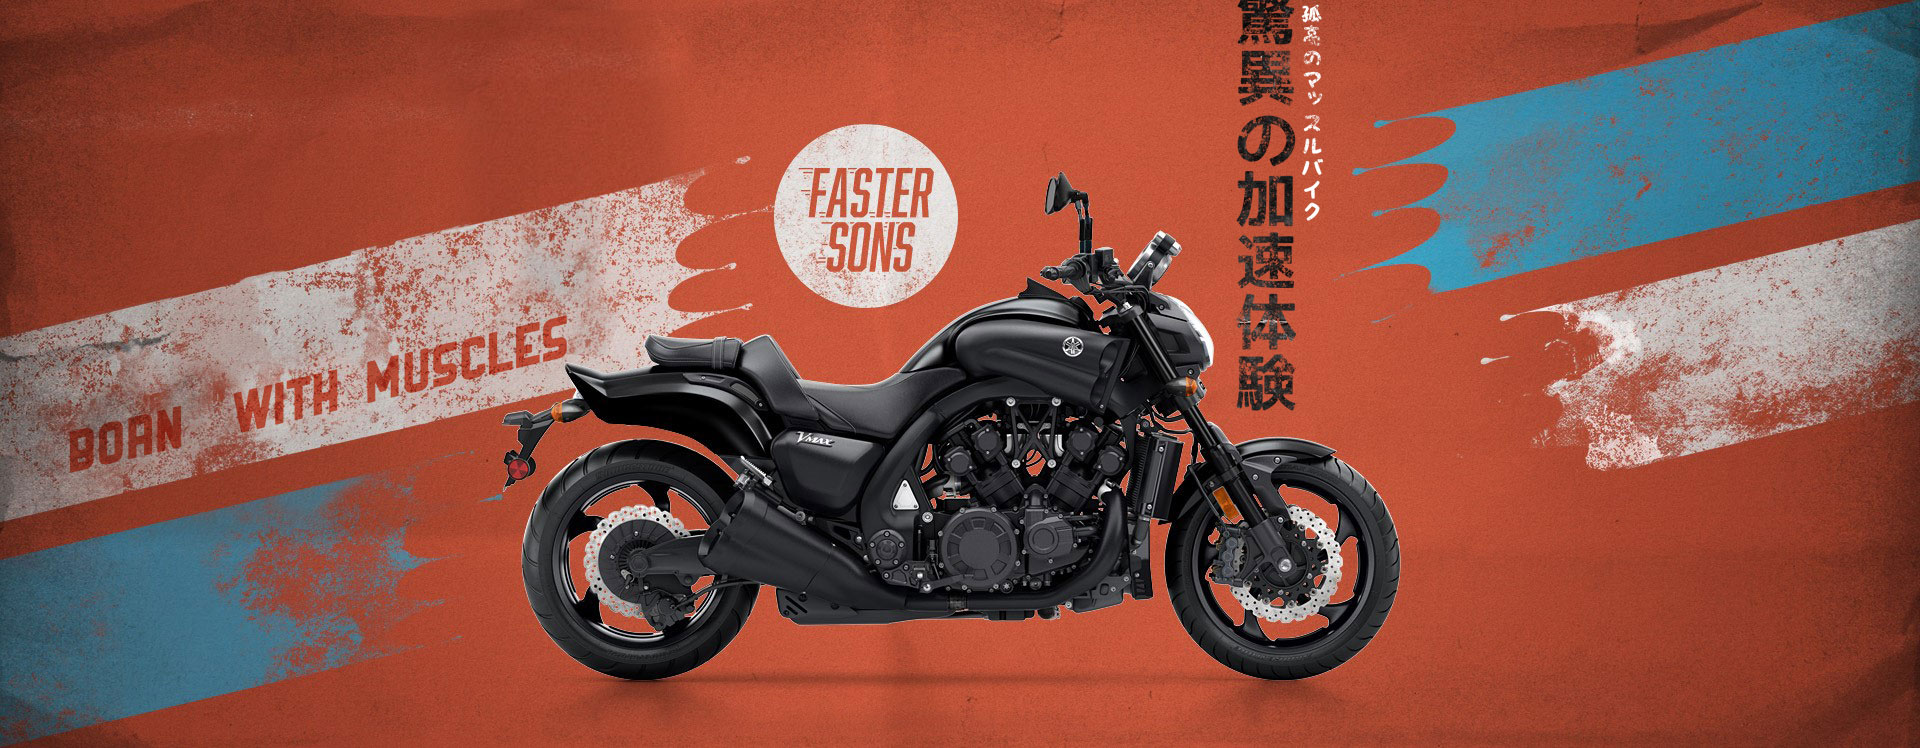 2020 Yamaha VMAX Sport Heritage Motorcycle - Model Home